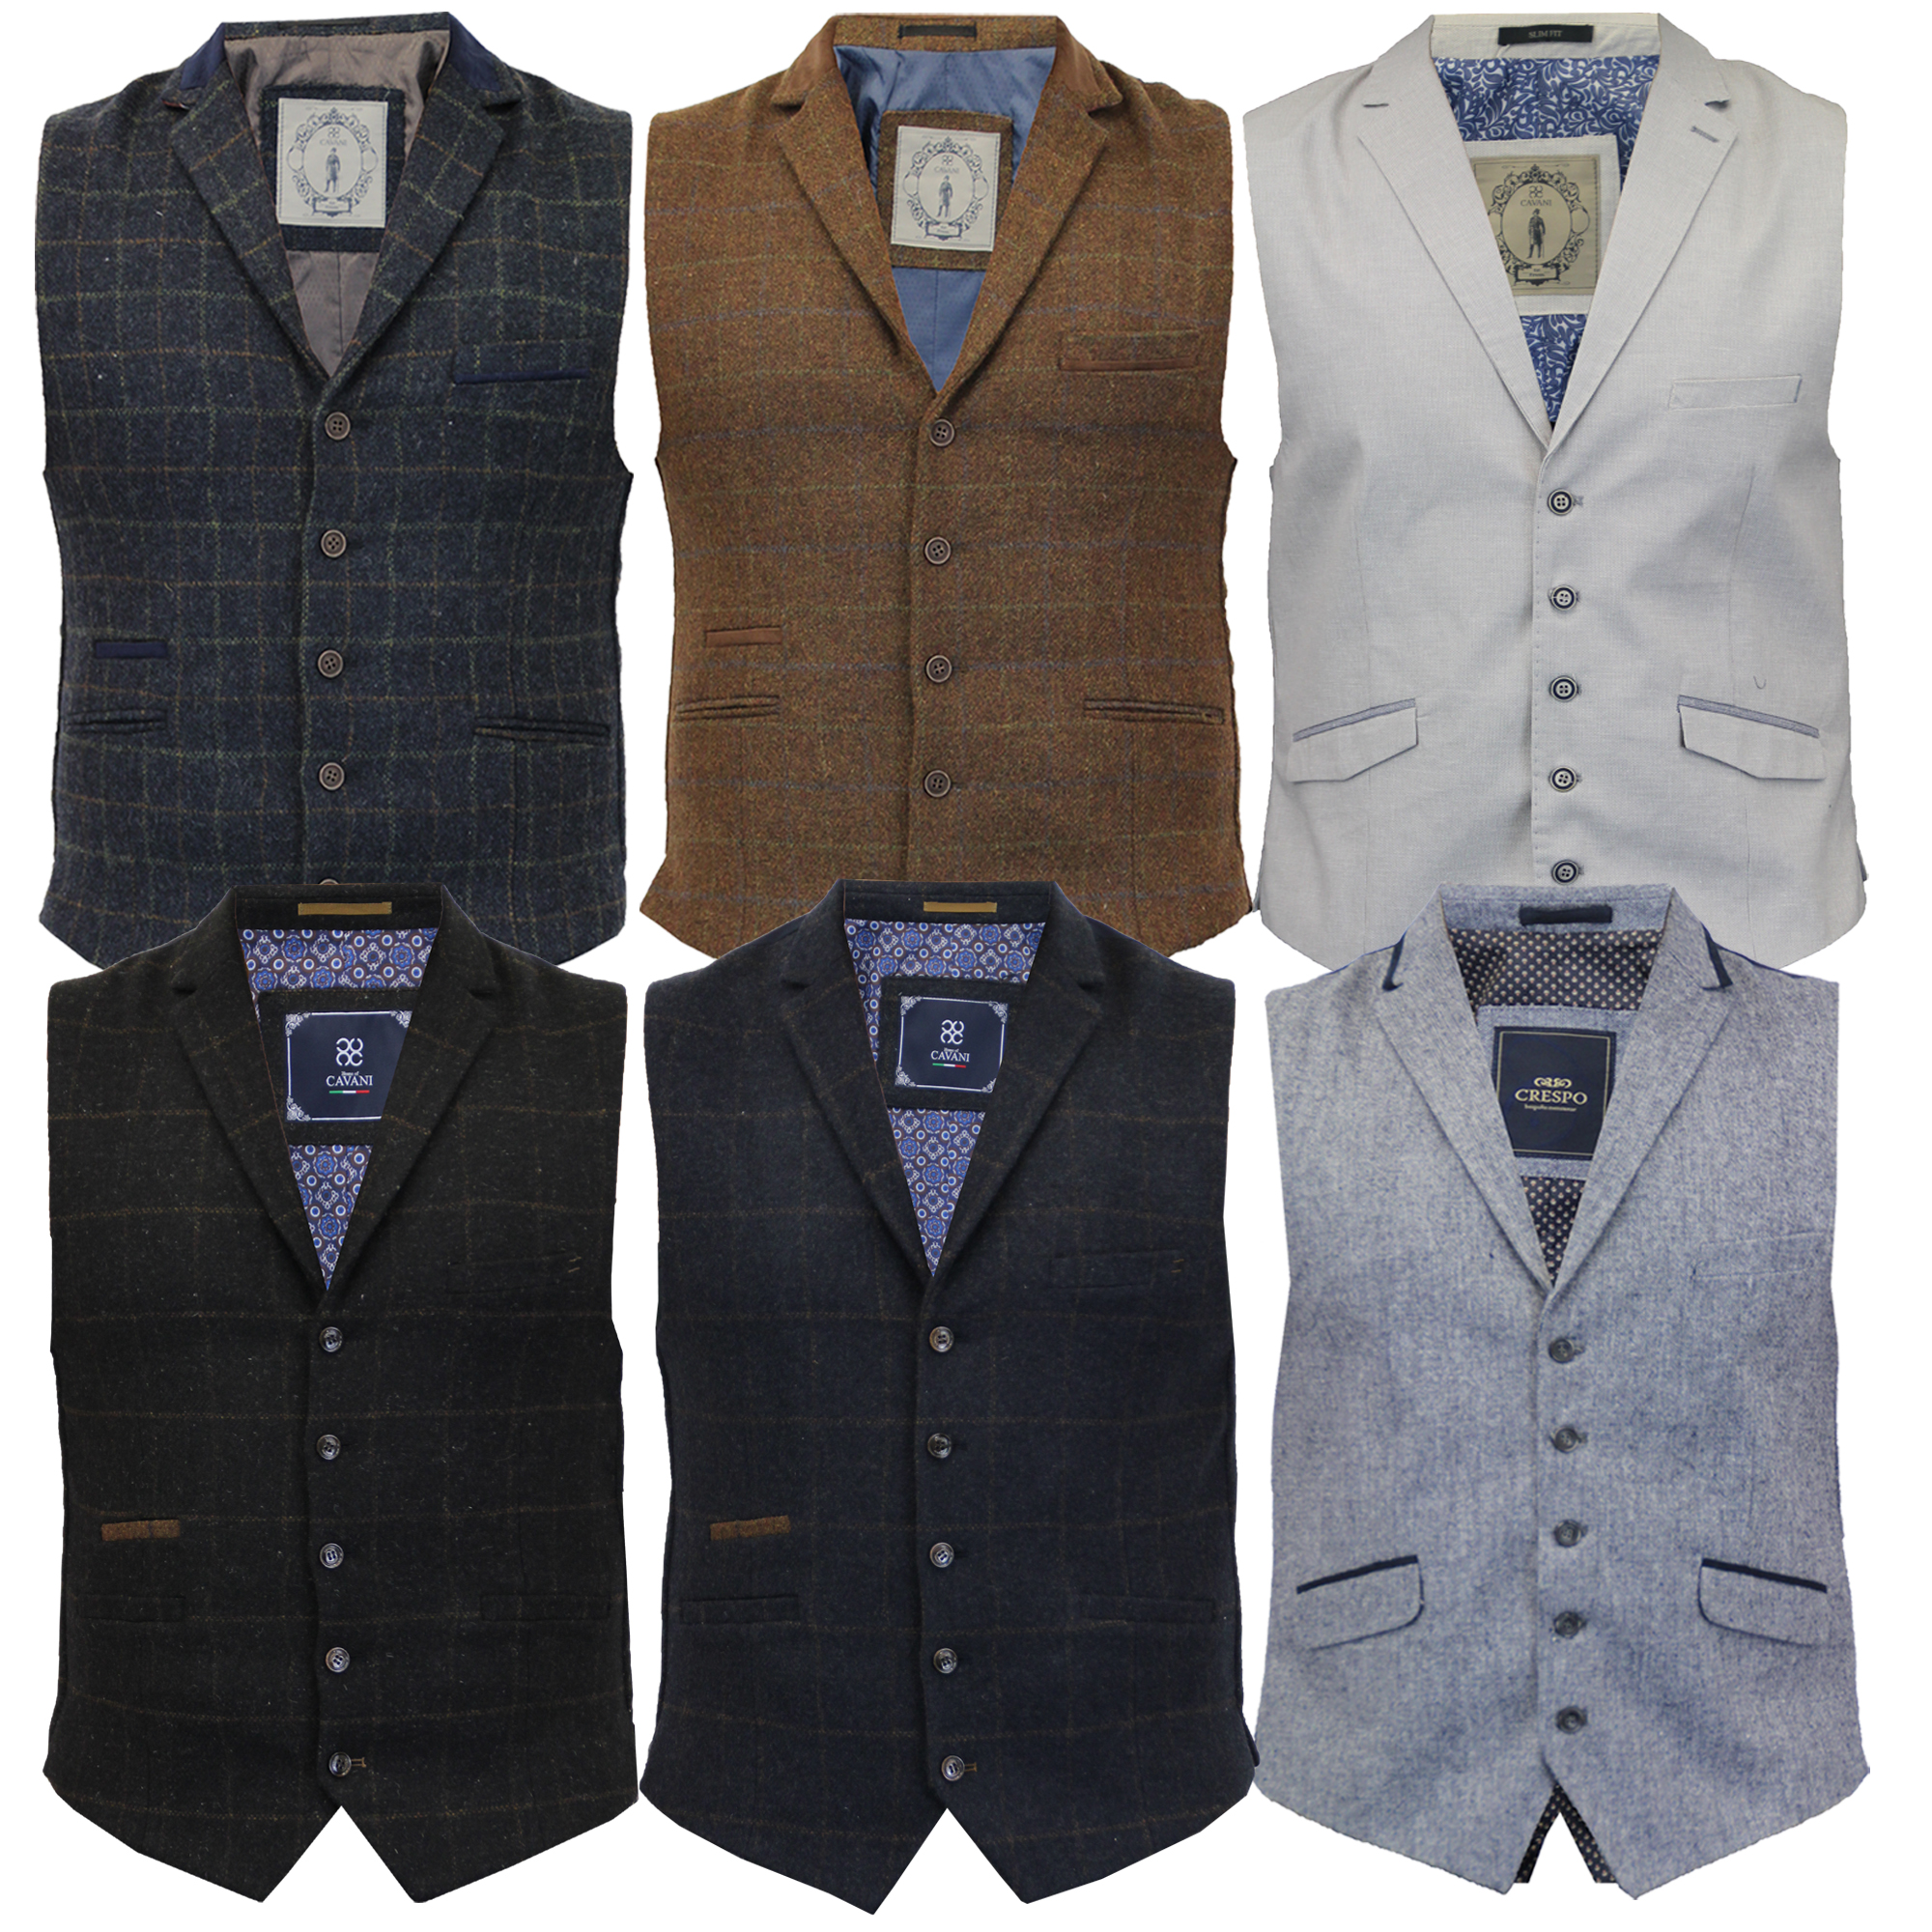 f5106917f0 Details about Mens Waistcoat Wool Mix Cord Cavani Formal Vest Herringbone  Tweed Check Party